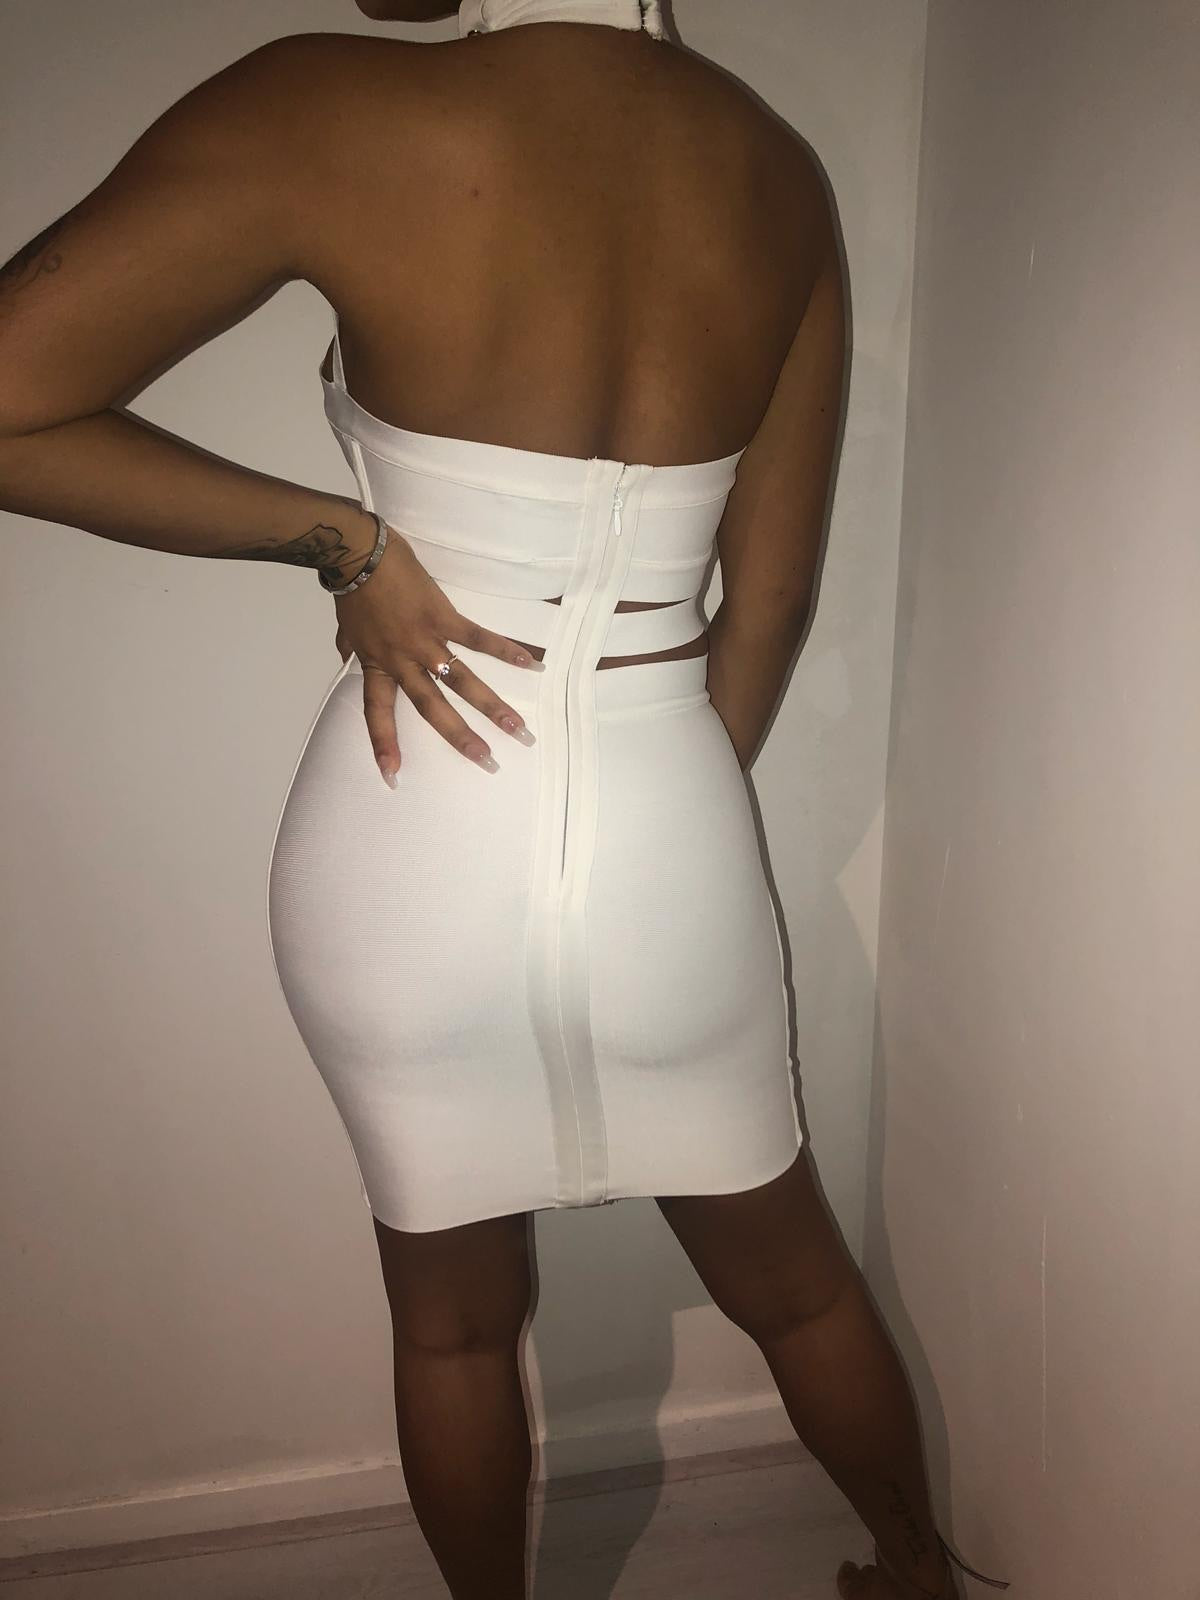 Trophy wife bandage dress